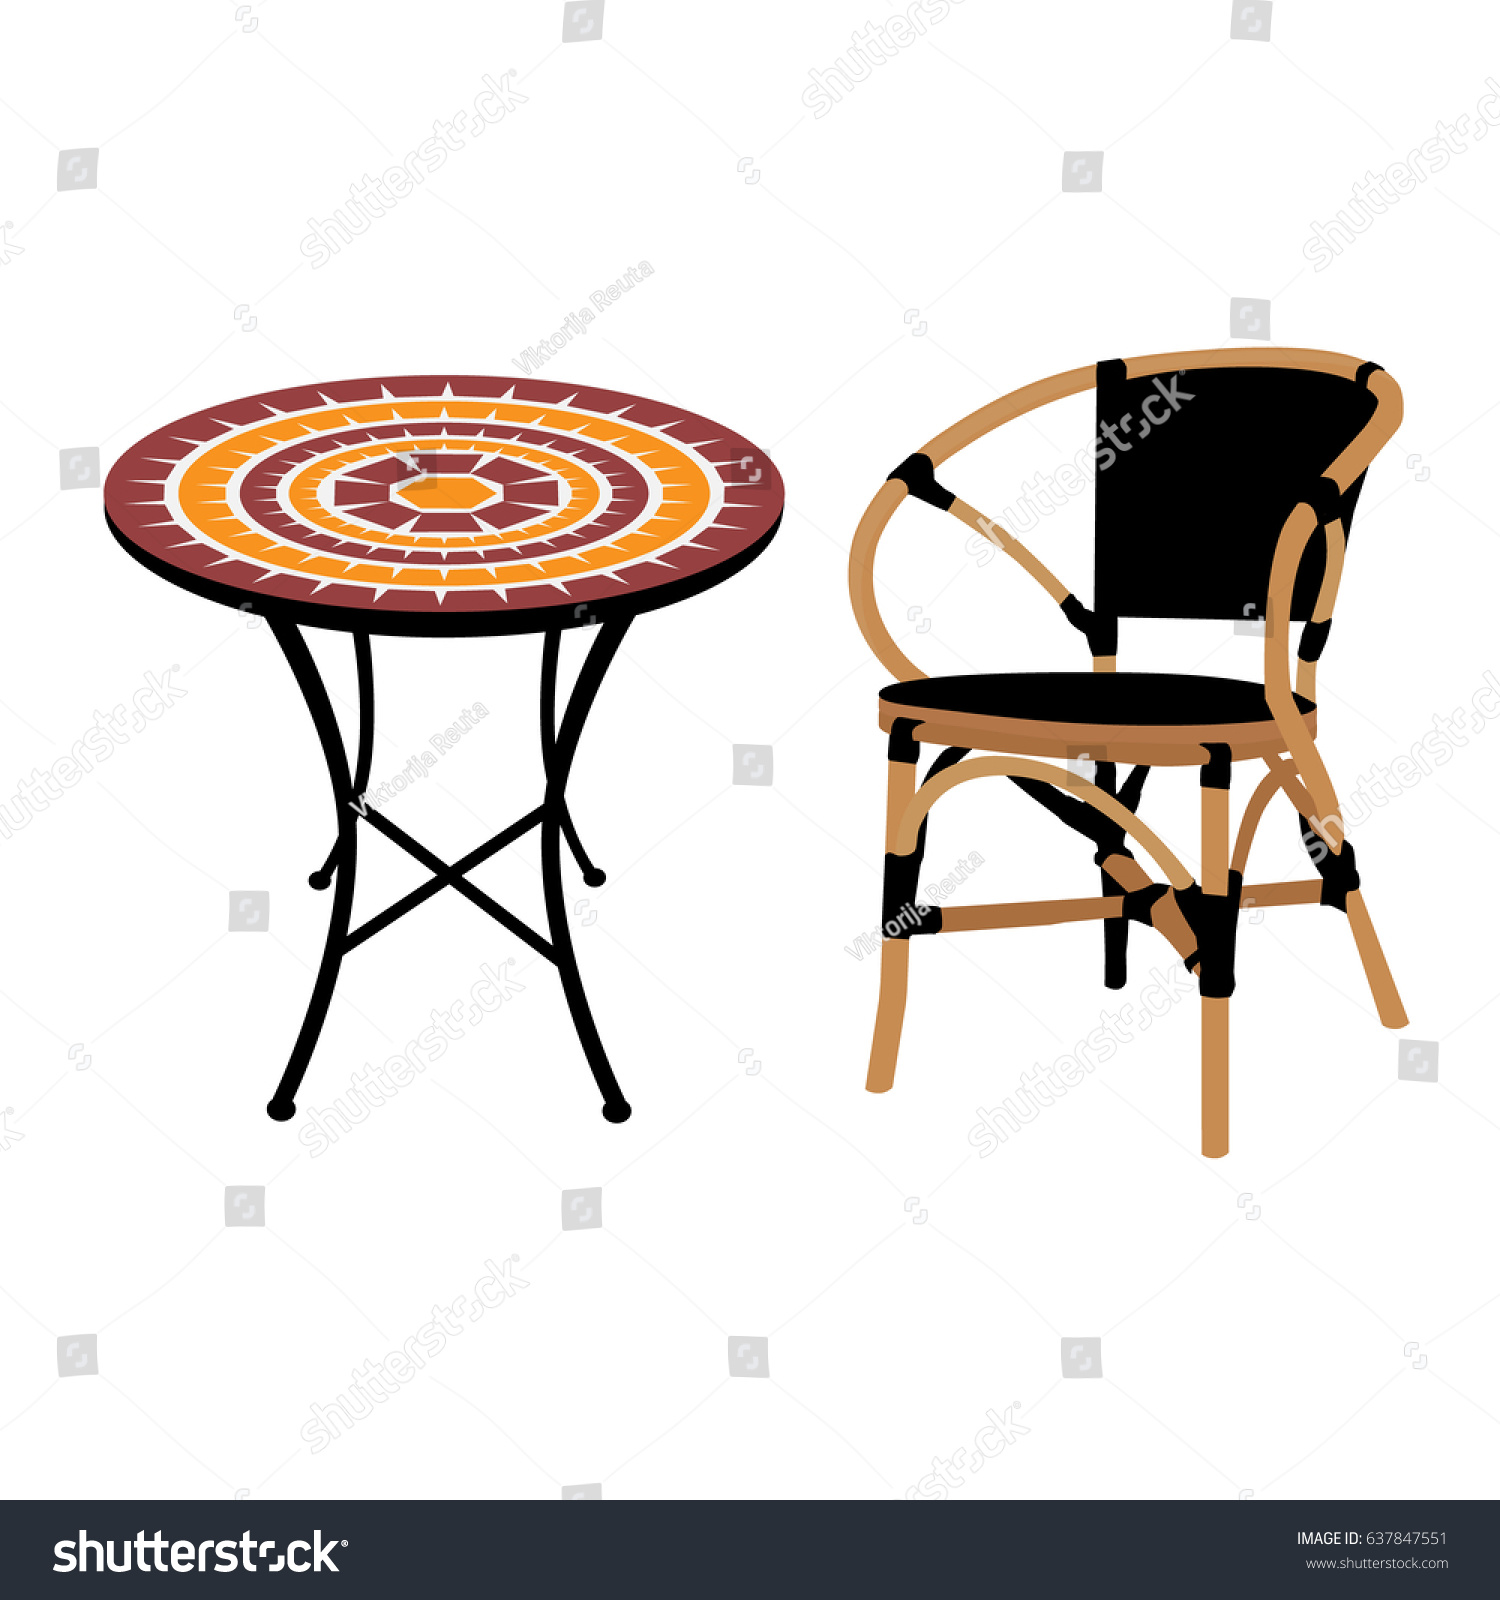 Vector Illustration Round Table Bamboo Chair Stock Vector